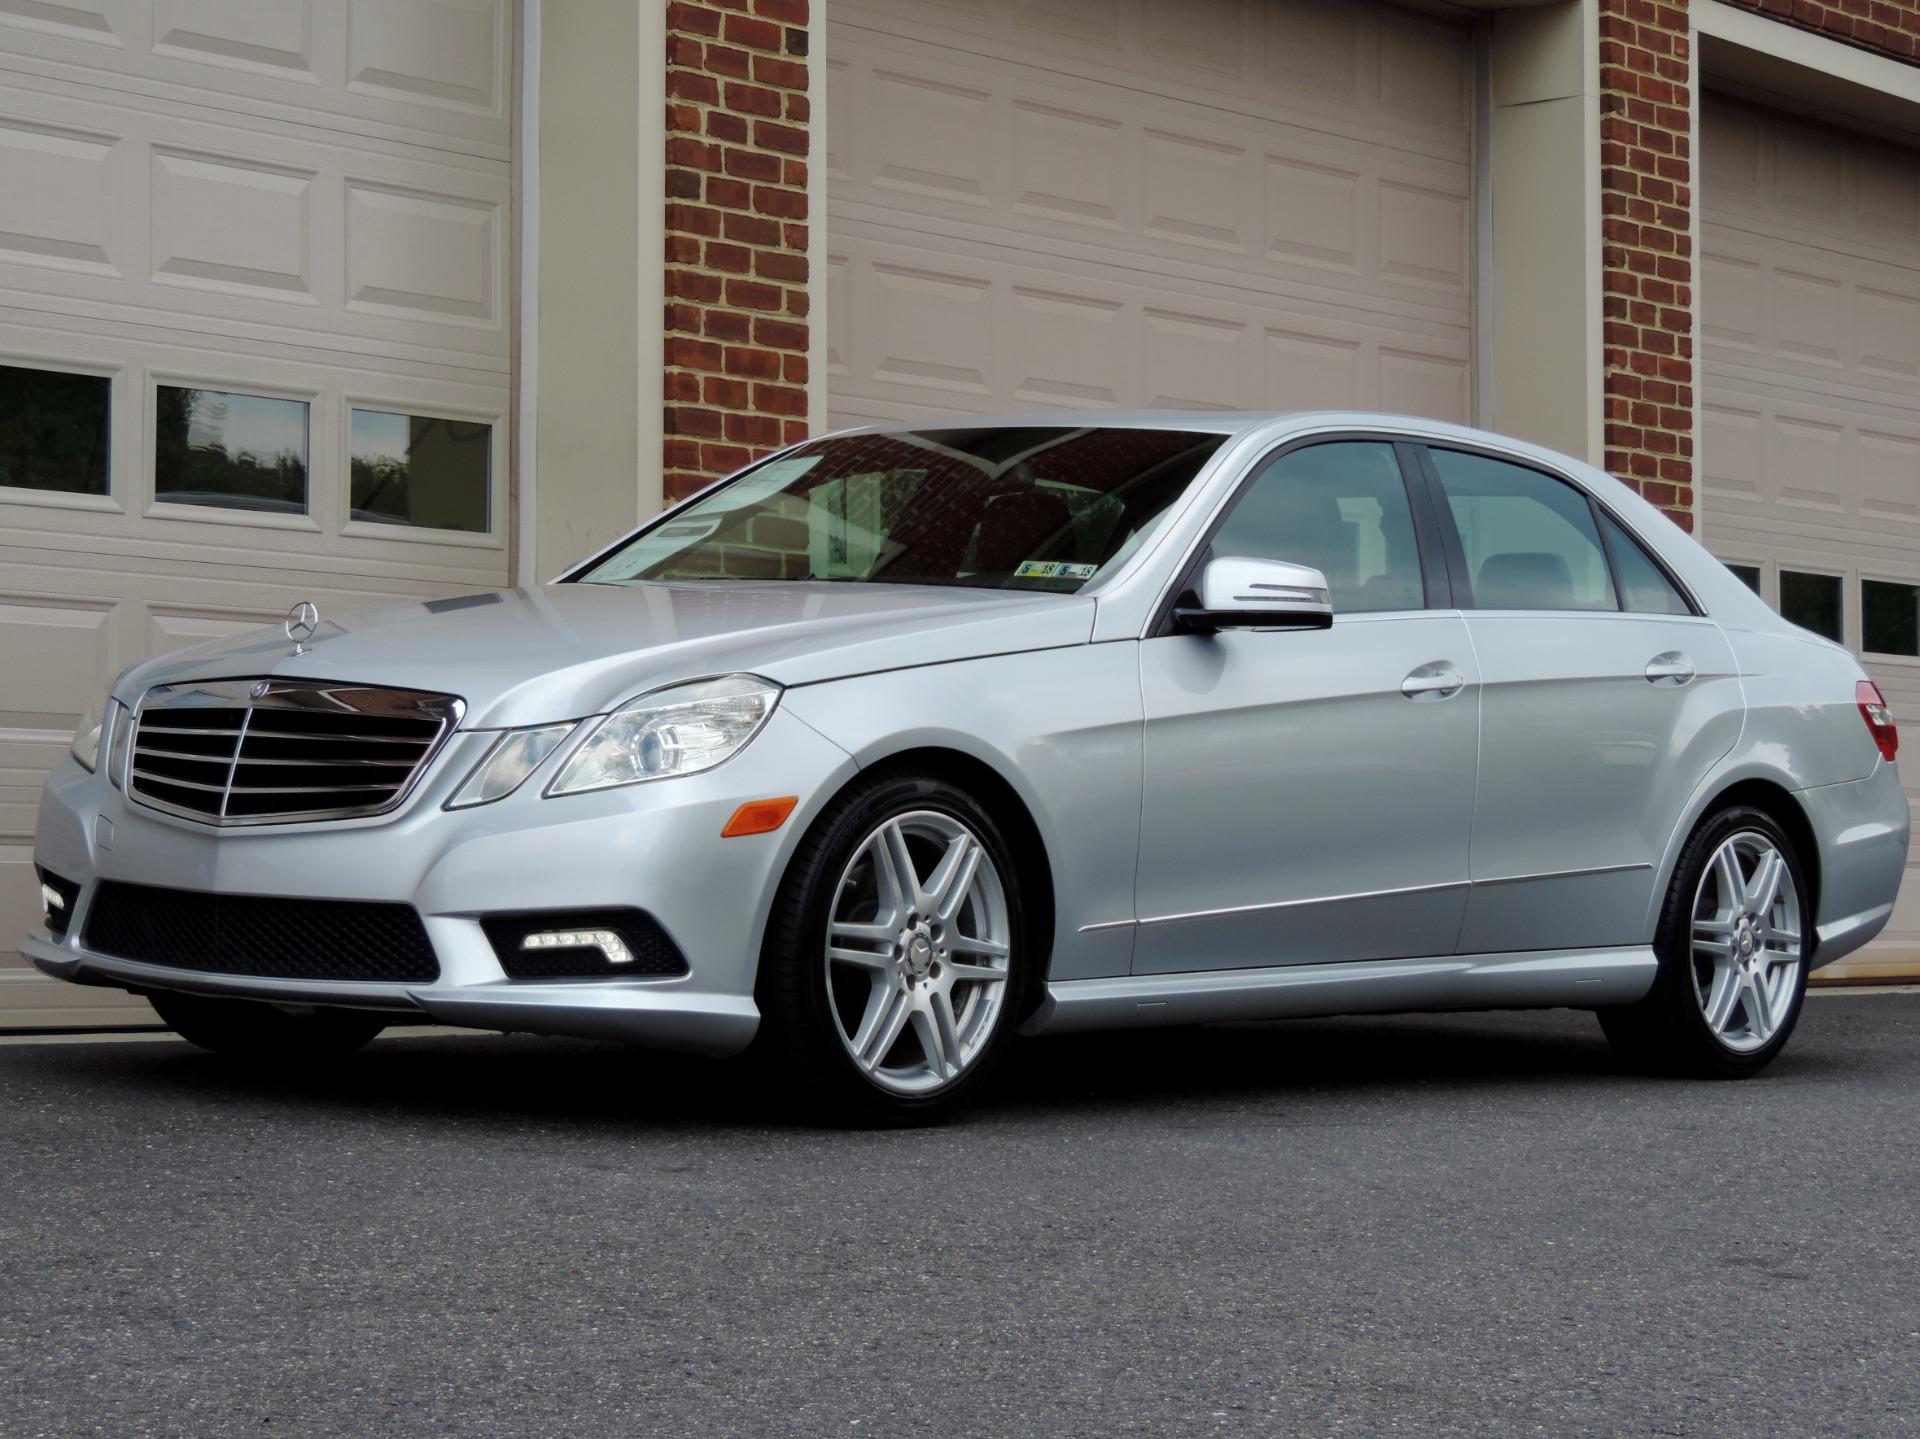 2011 mercedes benz e class e 350 sport 4matic stock 305462 for sale near edgewater park nj. Black Bedroom Furniture Sets. Home Design Ideas